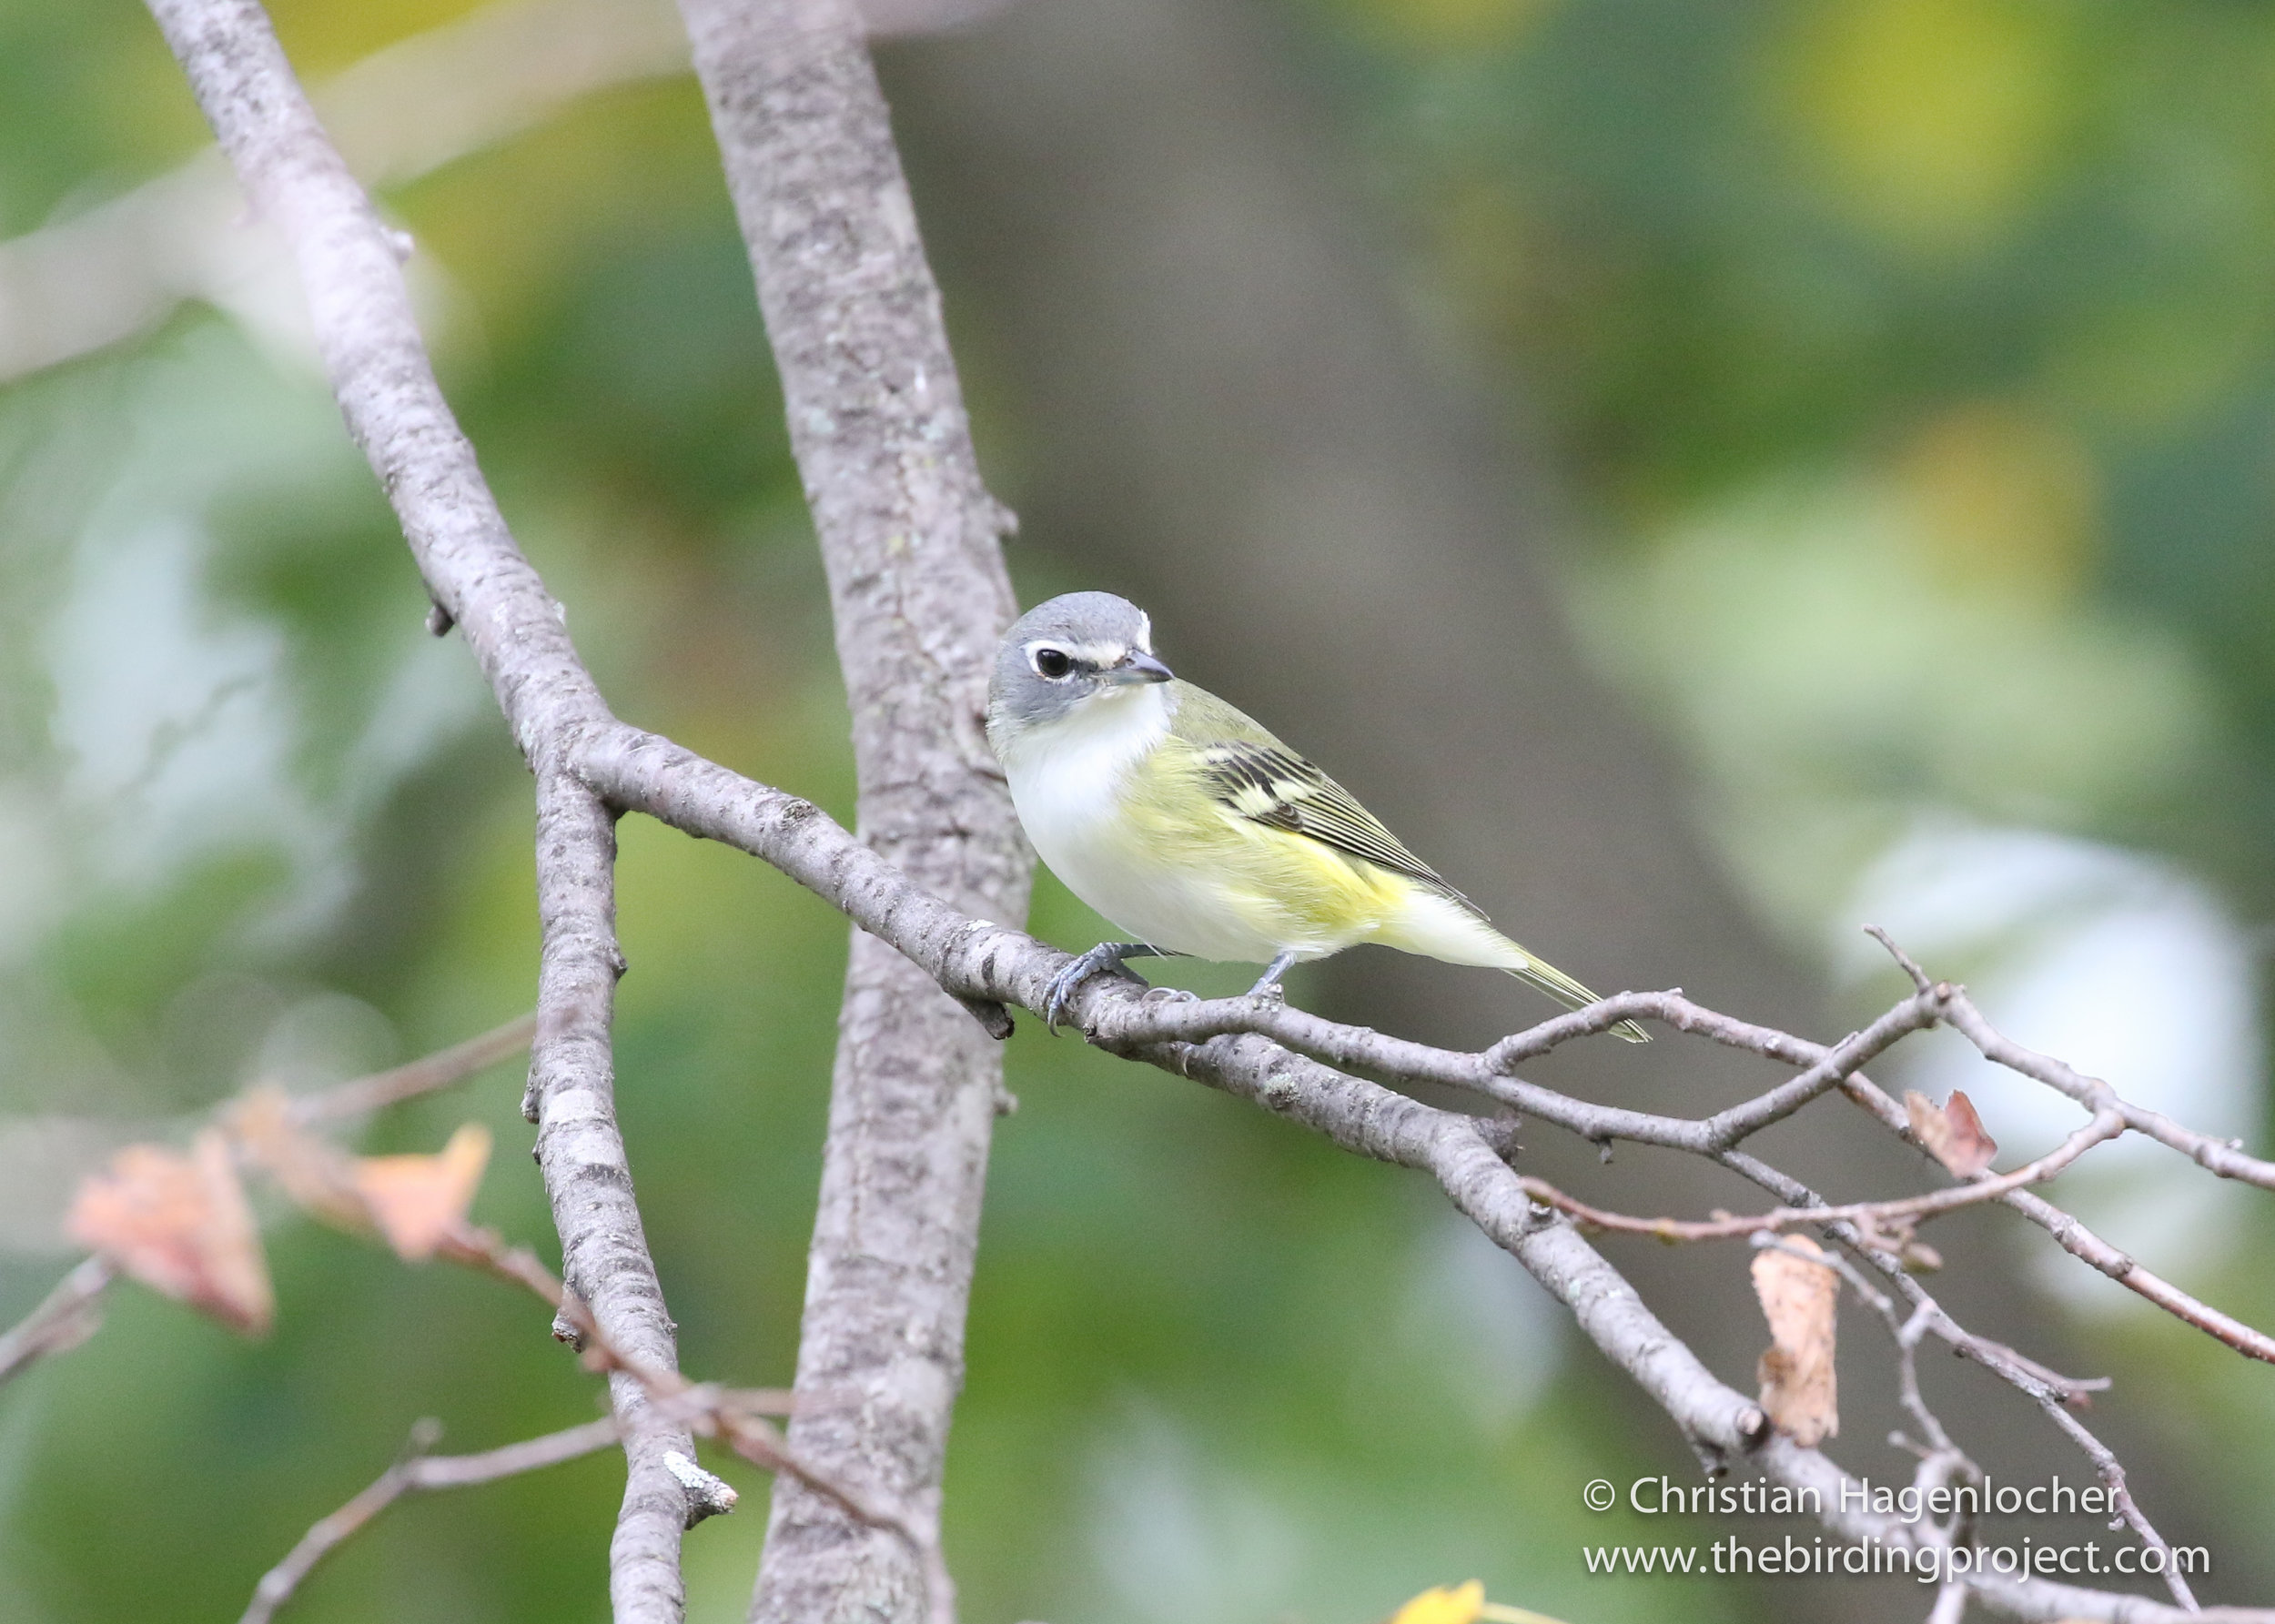 """A Blue-headed Vireo has a """"spectacled"""" appearance, taking a second to check me out."""